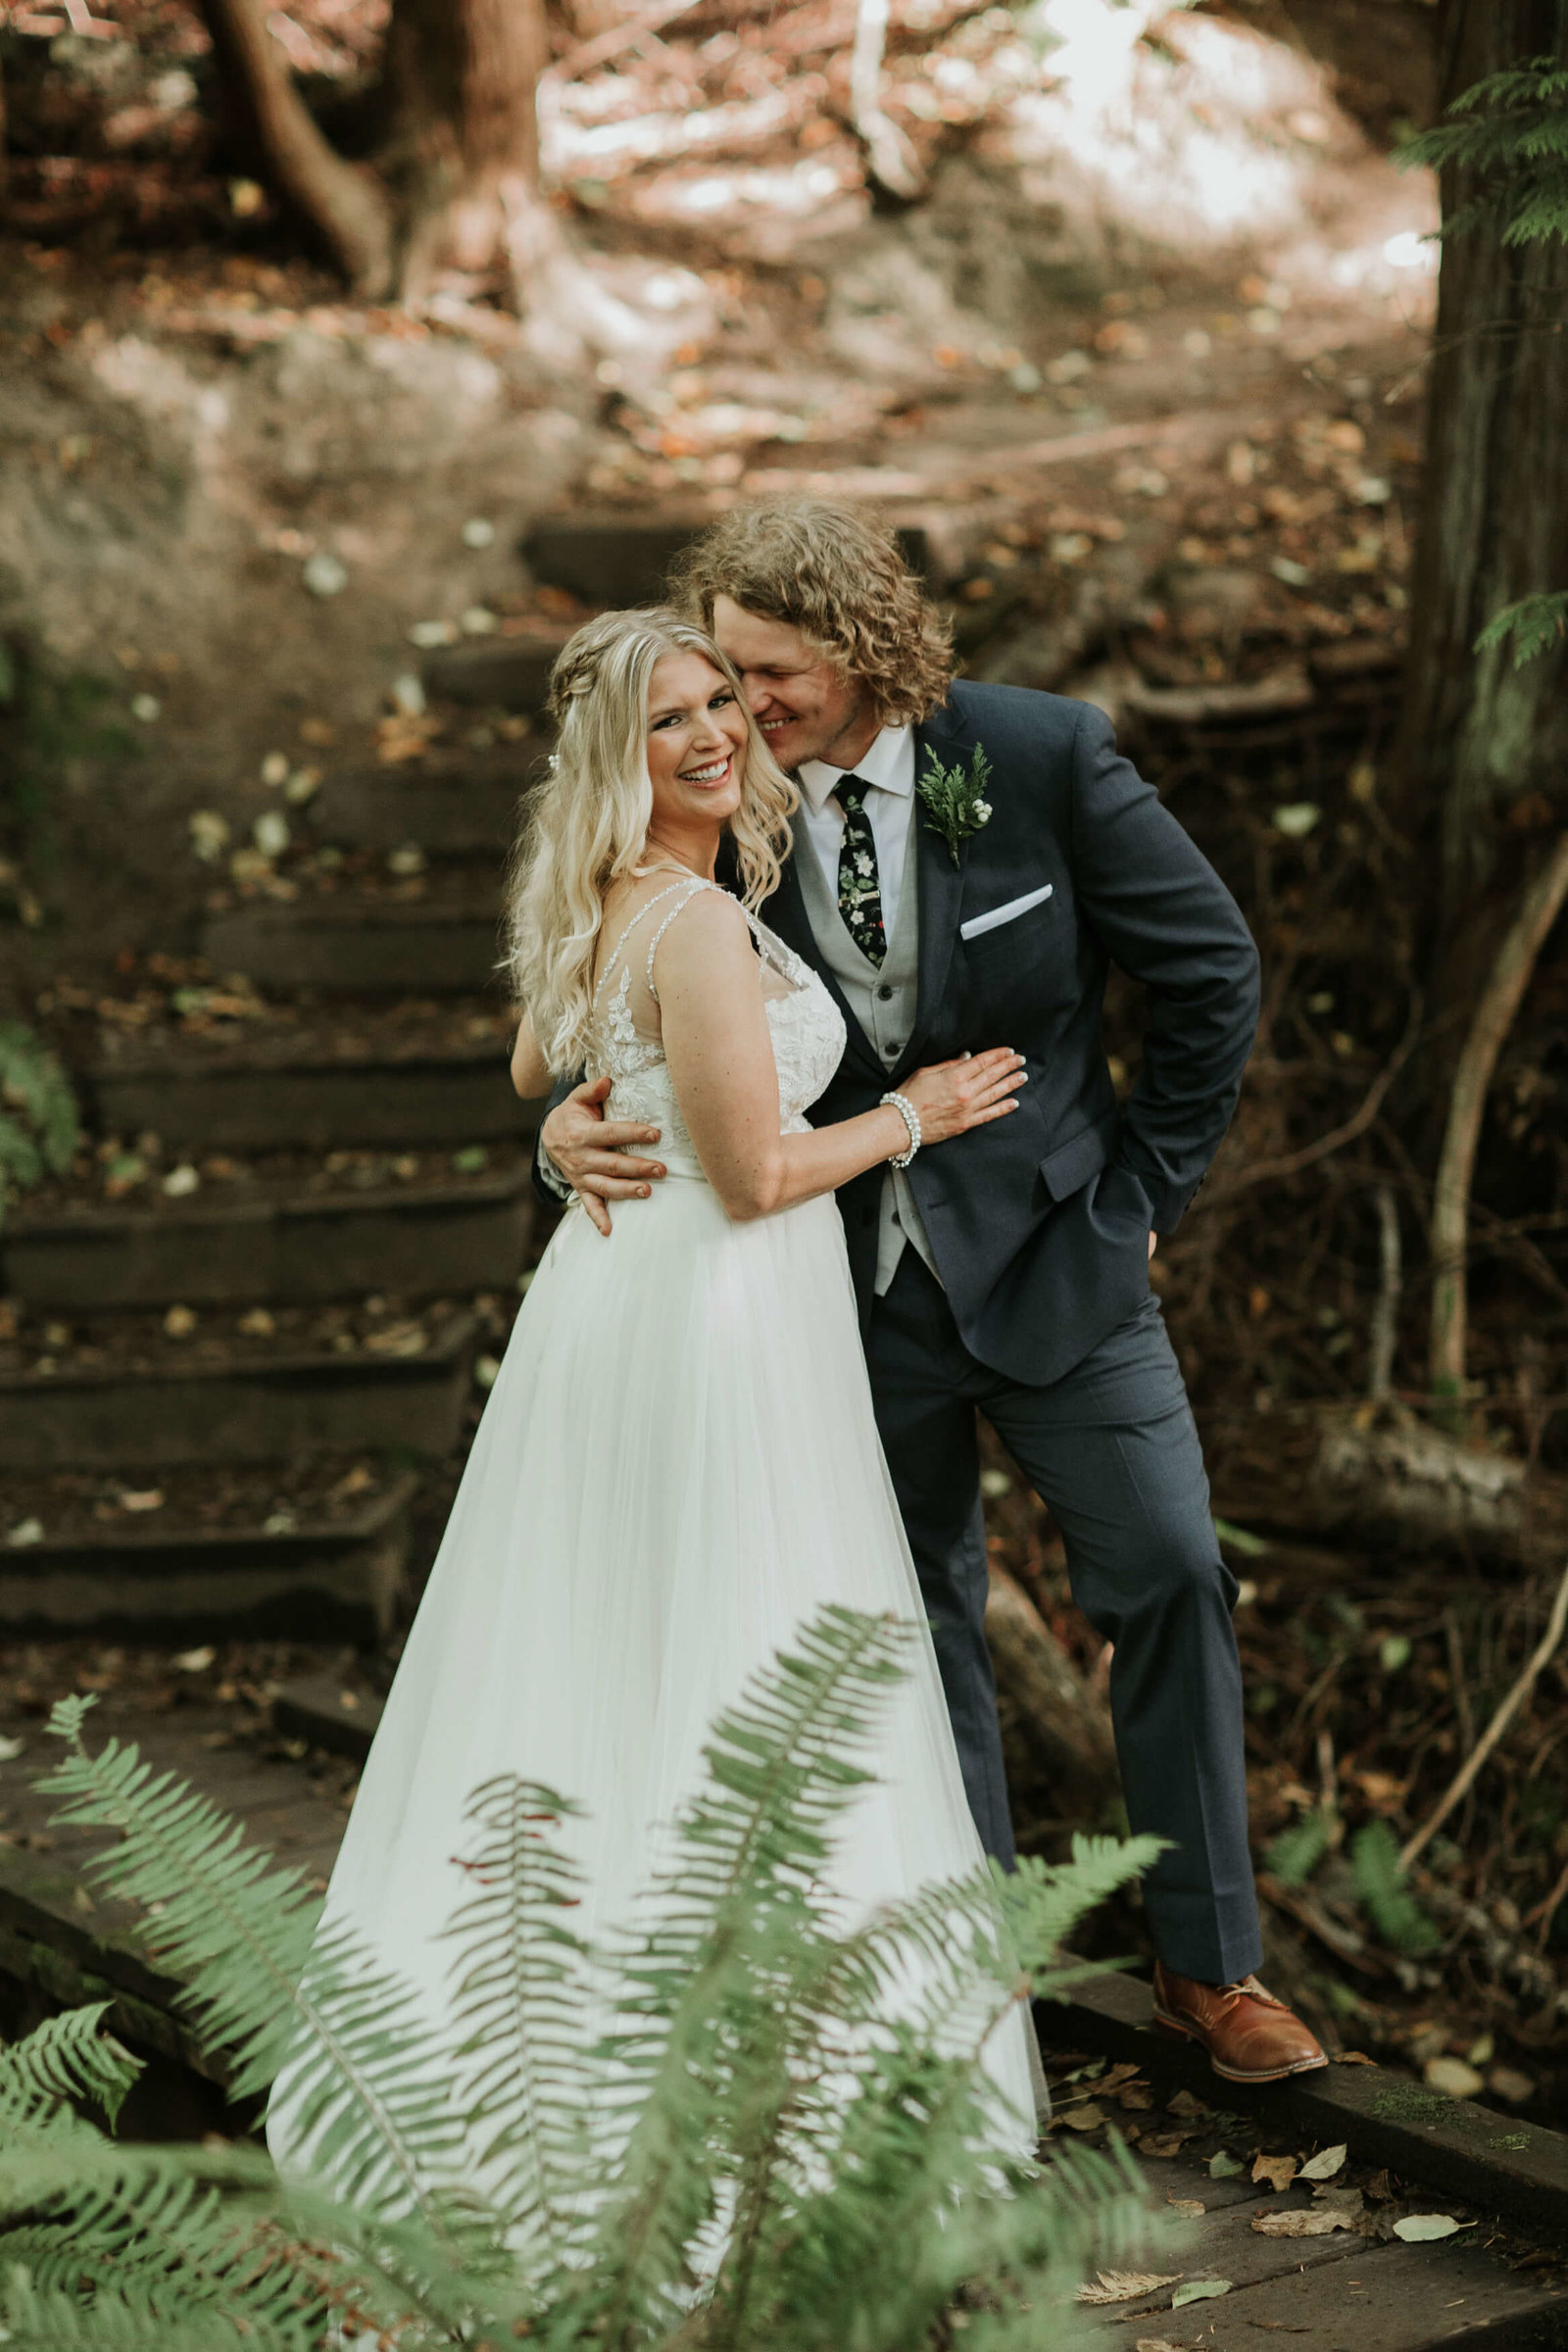 Orcas-island-wedding-katherine&robin-adina-preston-weddings-9-22-2018-APW-H867